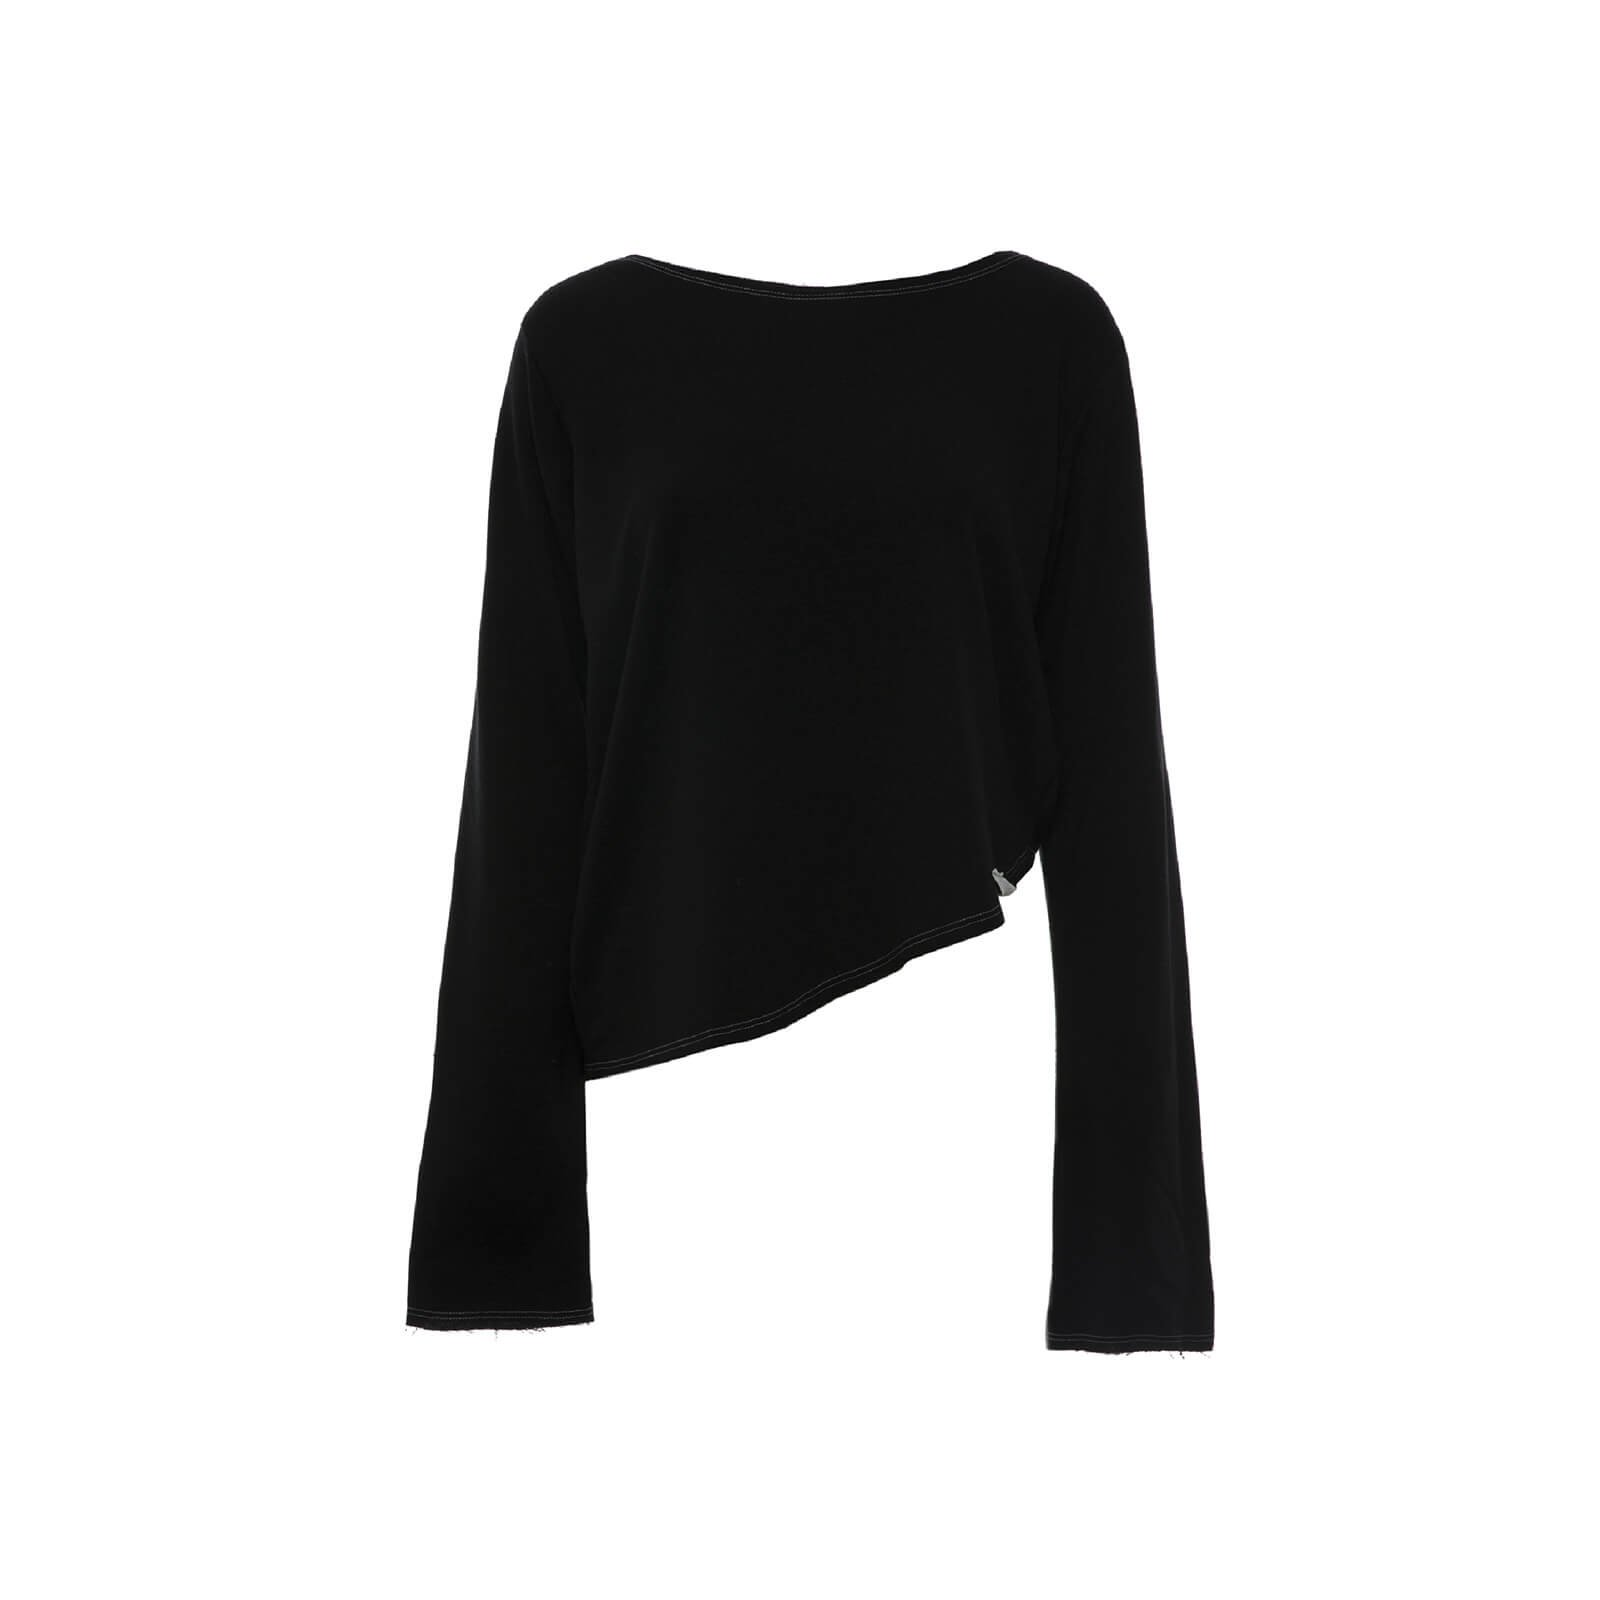 CROPPED DIAGONAL BLACK